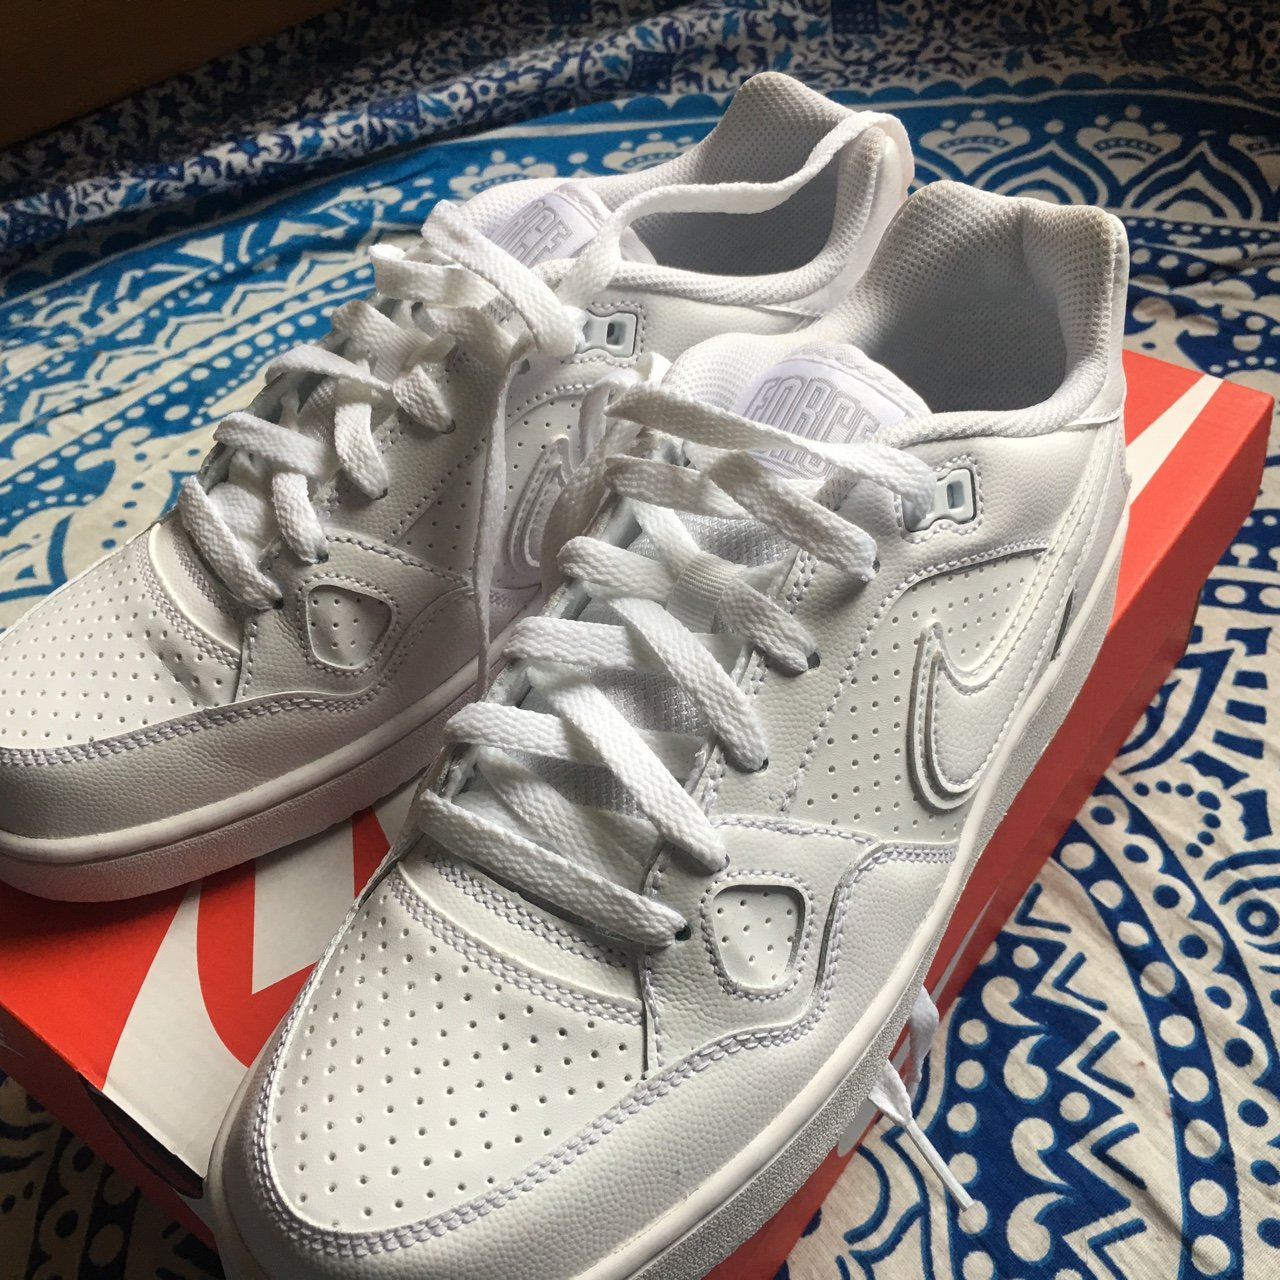 5bba14f2c613 Nike son of force rare Nike shoes. Bought last weekend worn - Depop